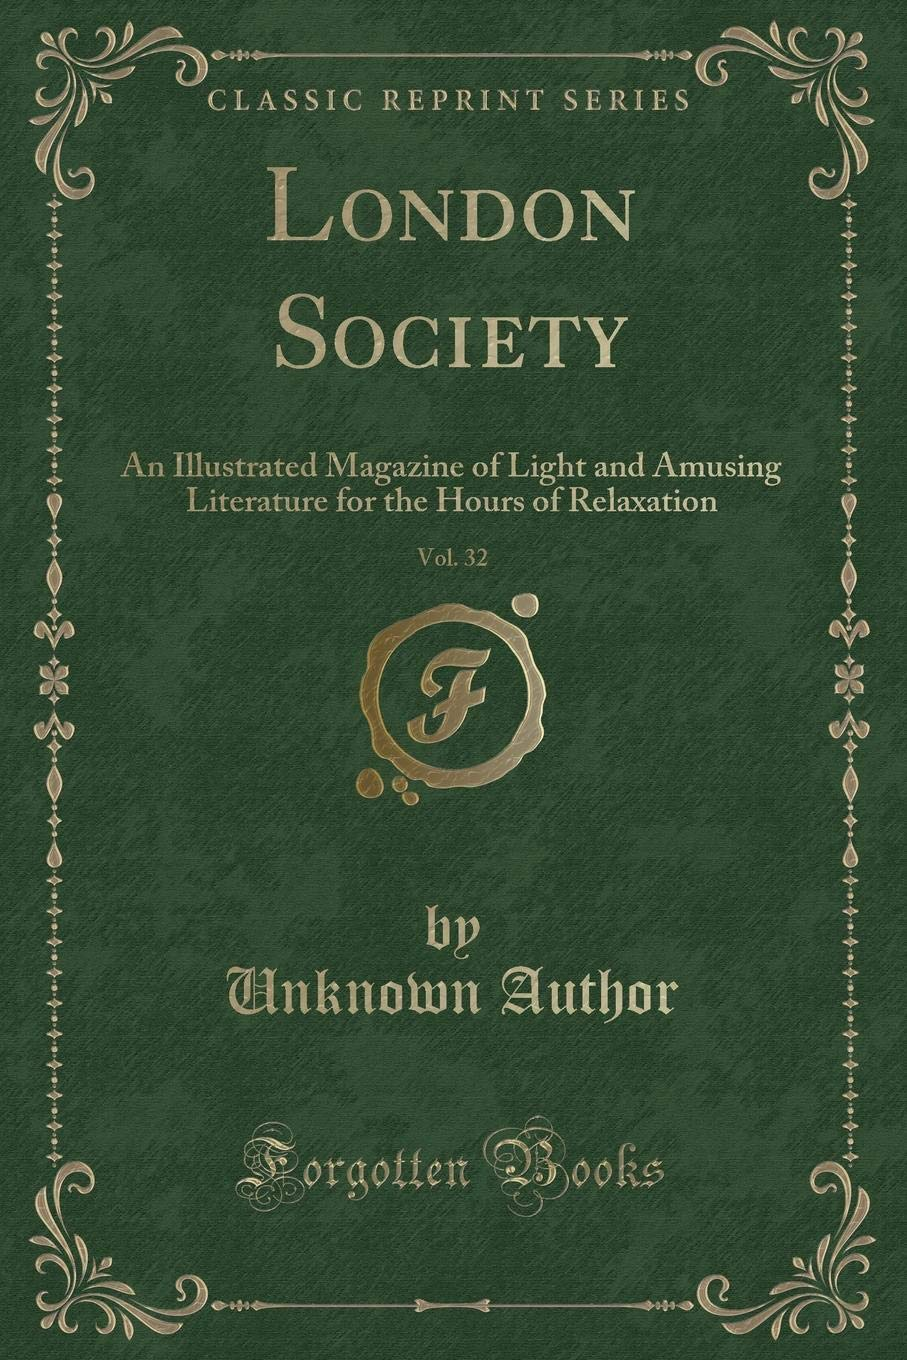 London Society, Vol. 32: An Illustrated Magazine of Light and Amusing Literature for the Hours of Relaxation (Classic Reprint) ebook